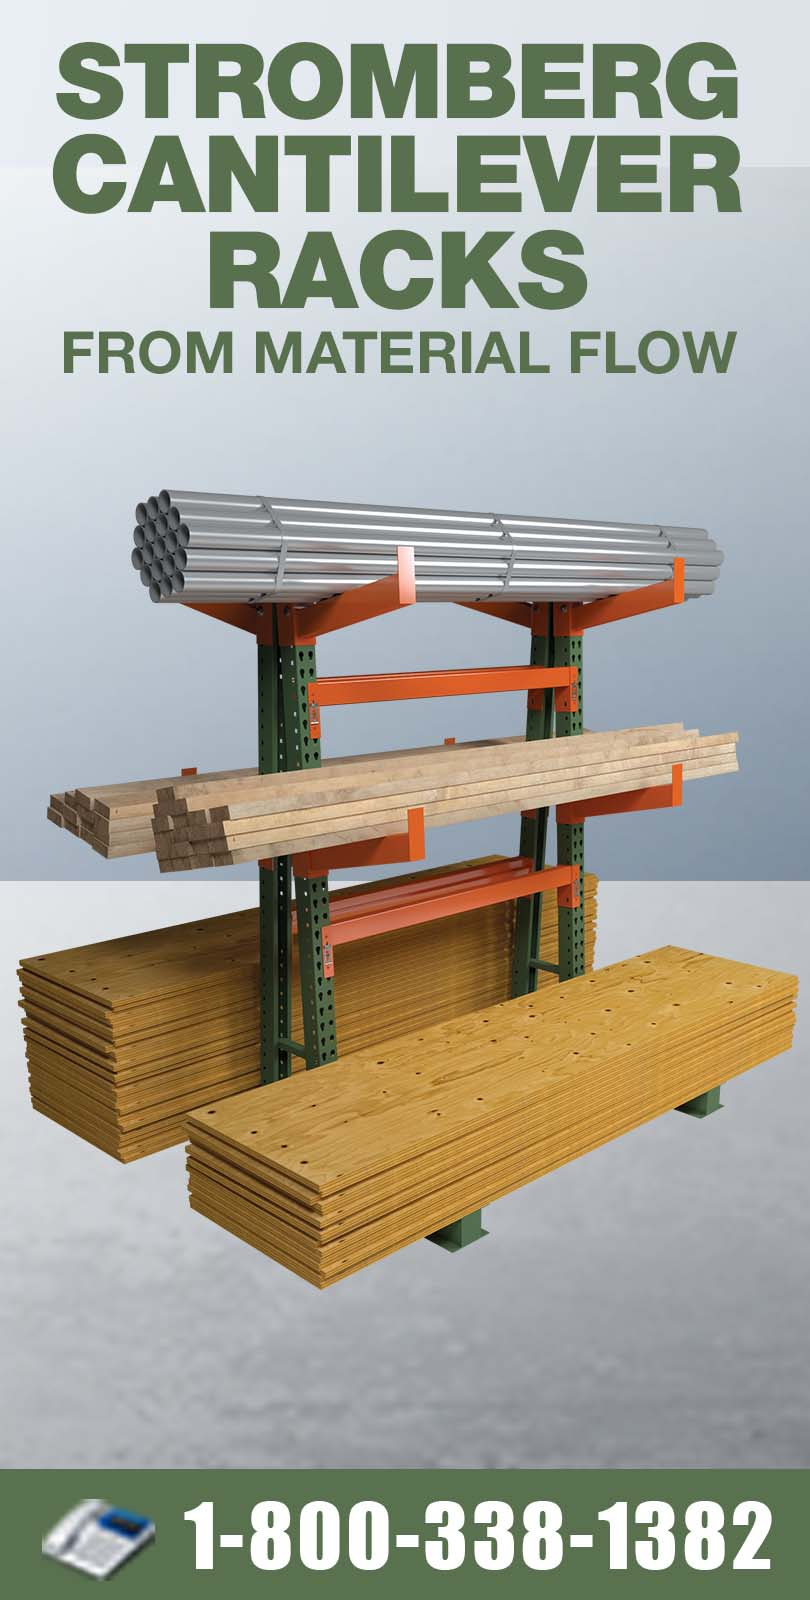 Stromberg Cantilever Racking from Material Flow